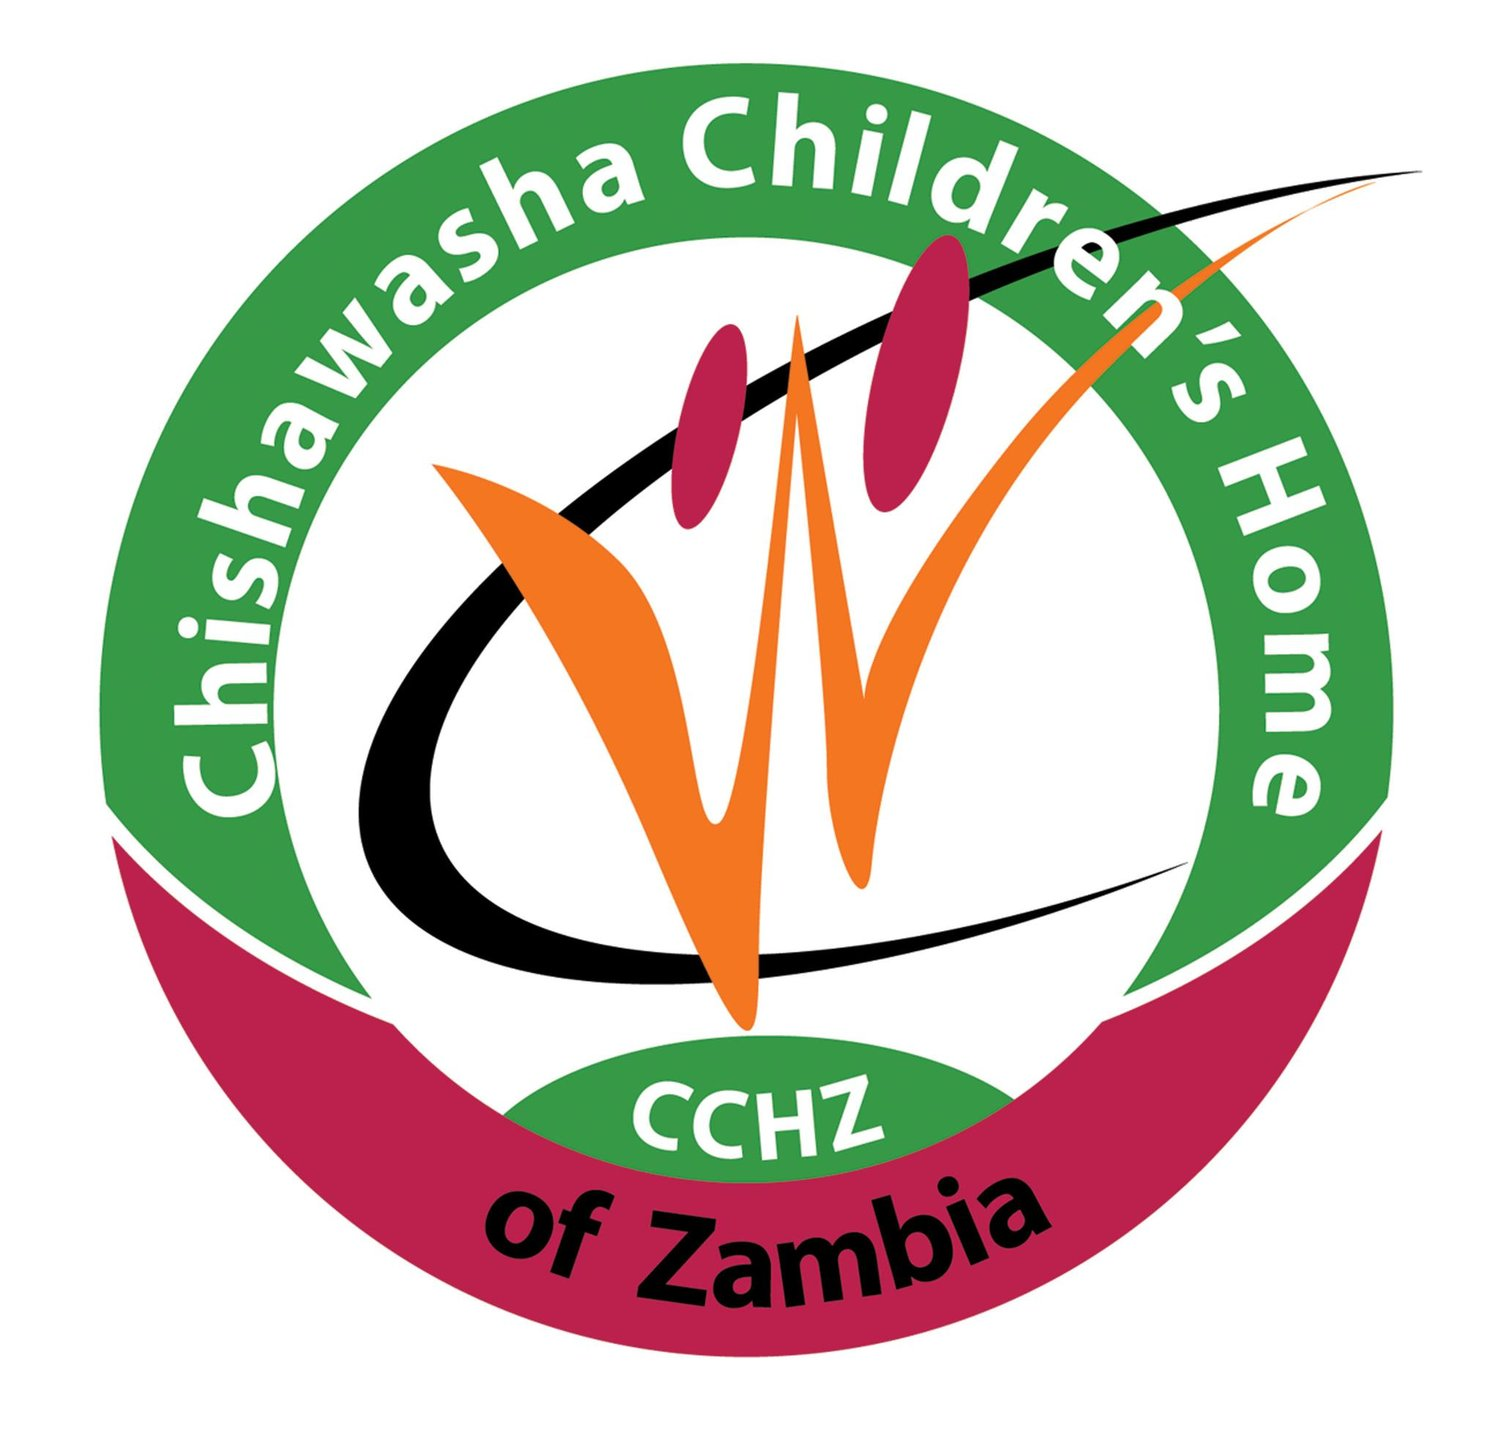 Chishawasha Children's Home of Zambia